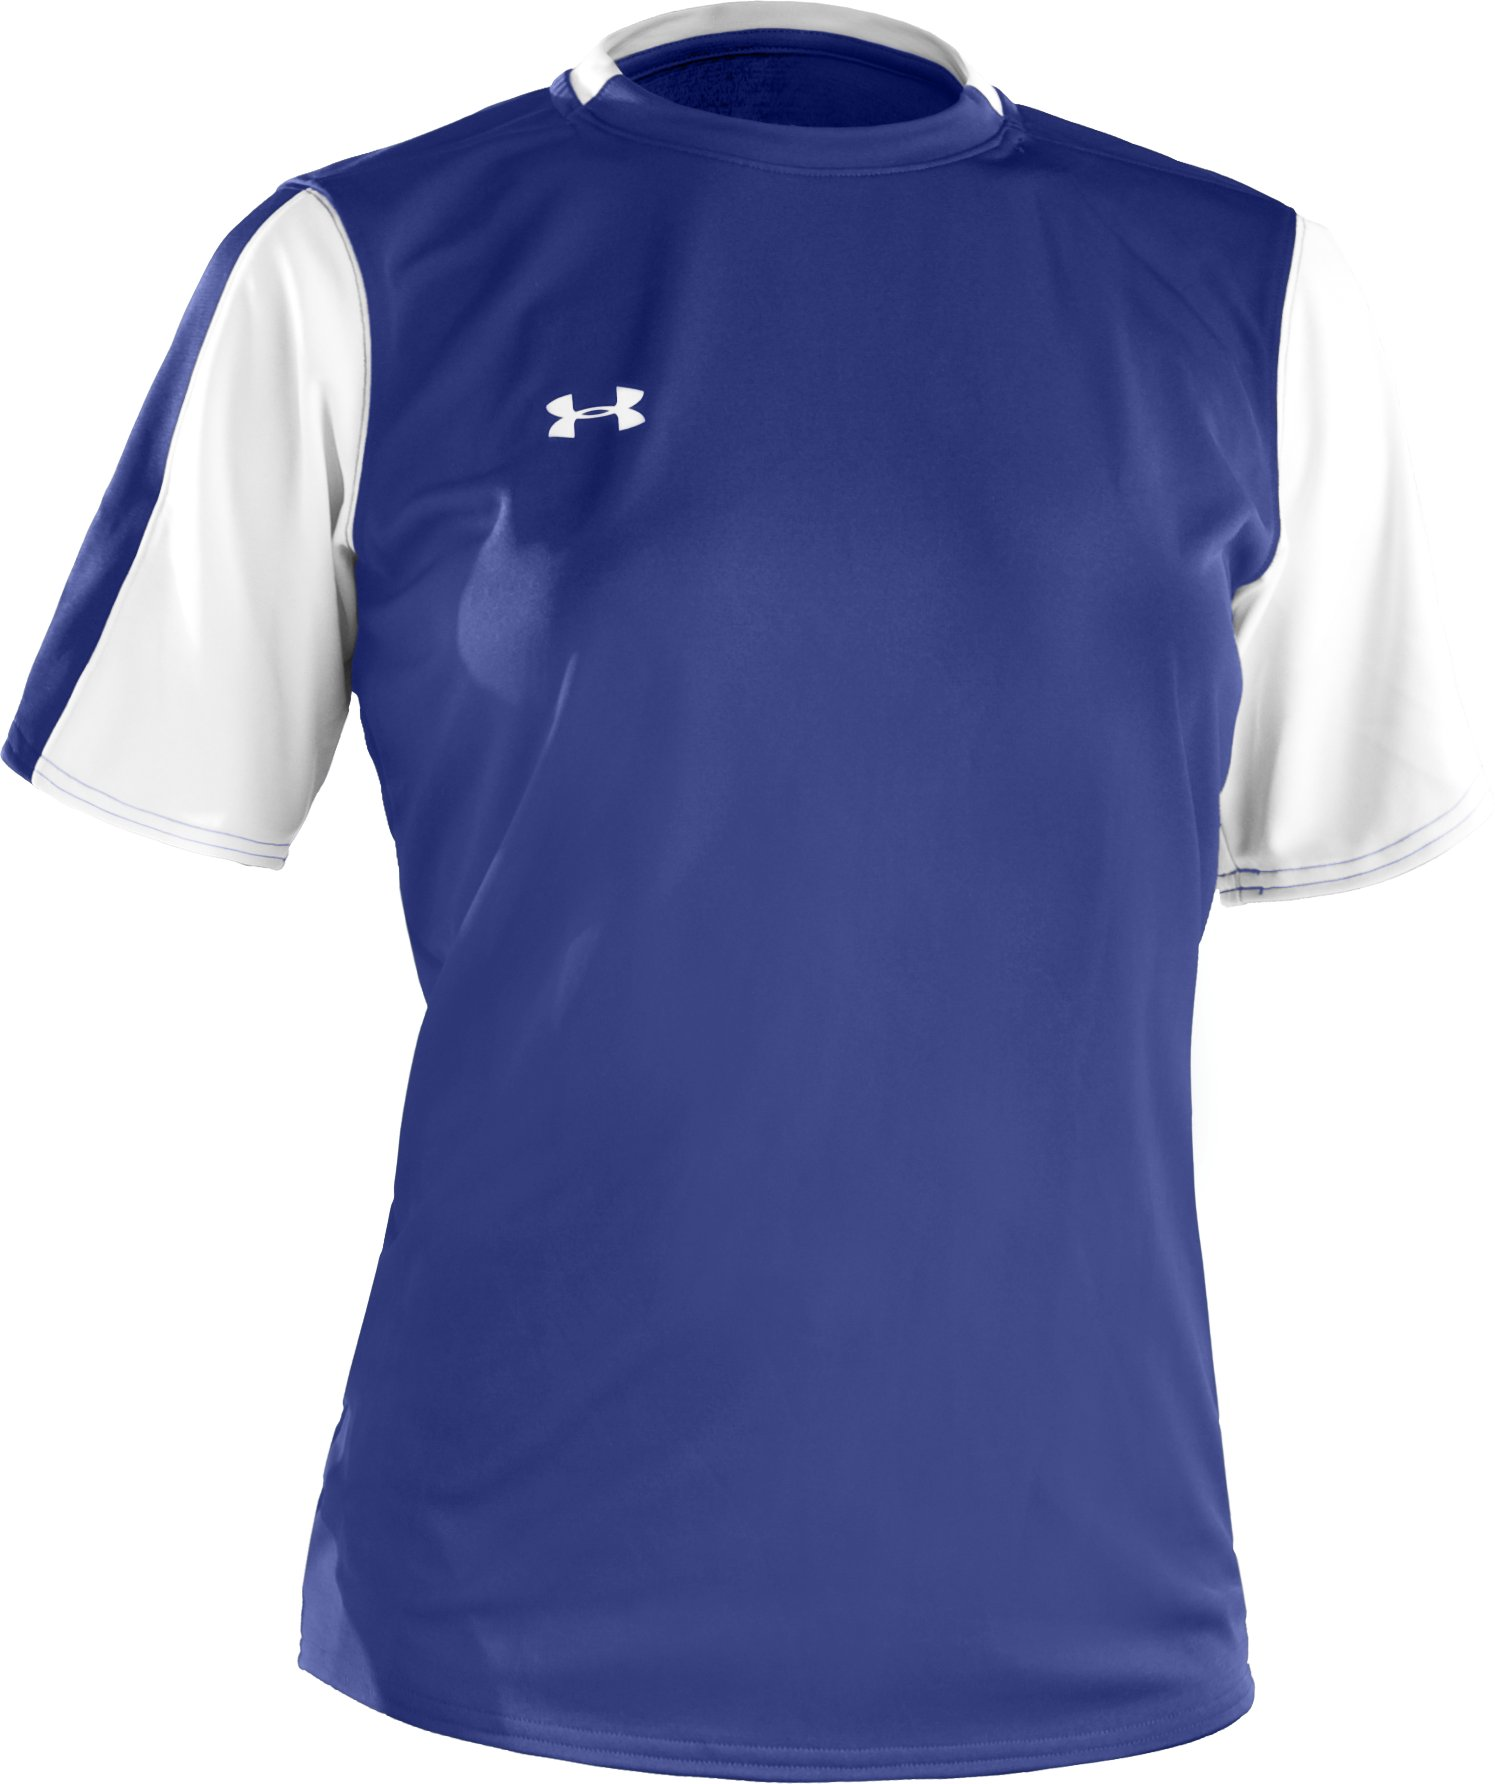 Women's UA Classic Short Sleeve Jersey, Royal